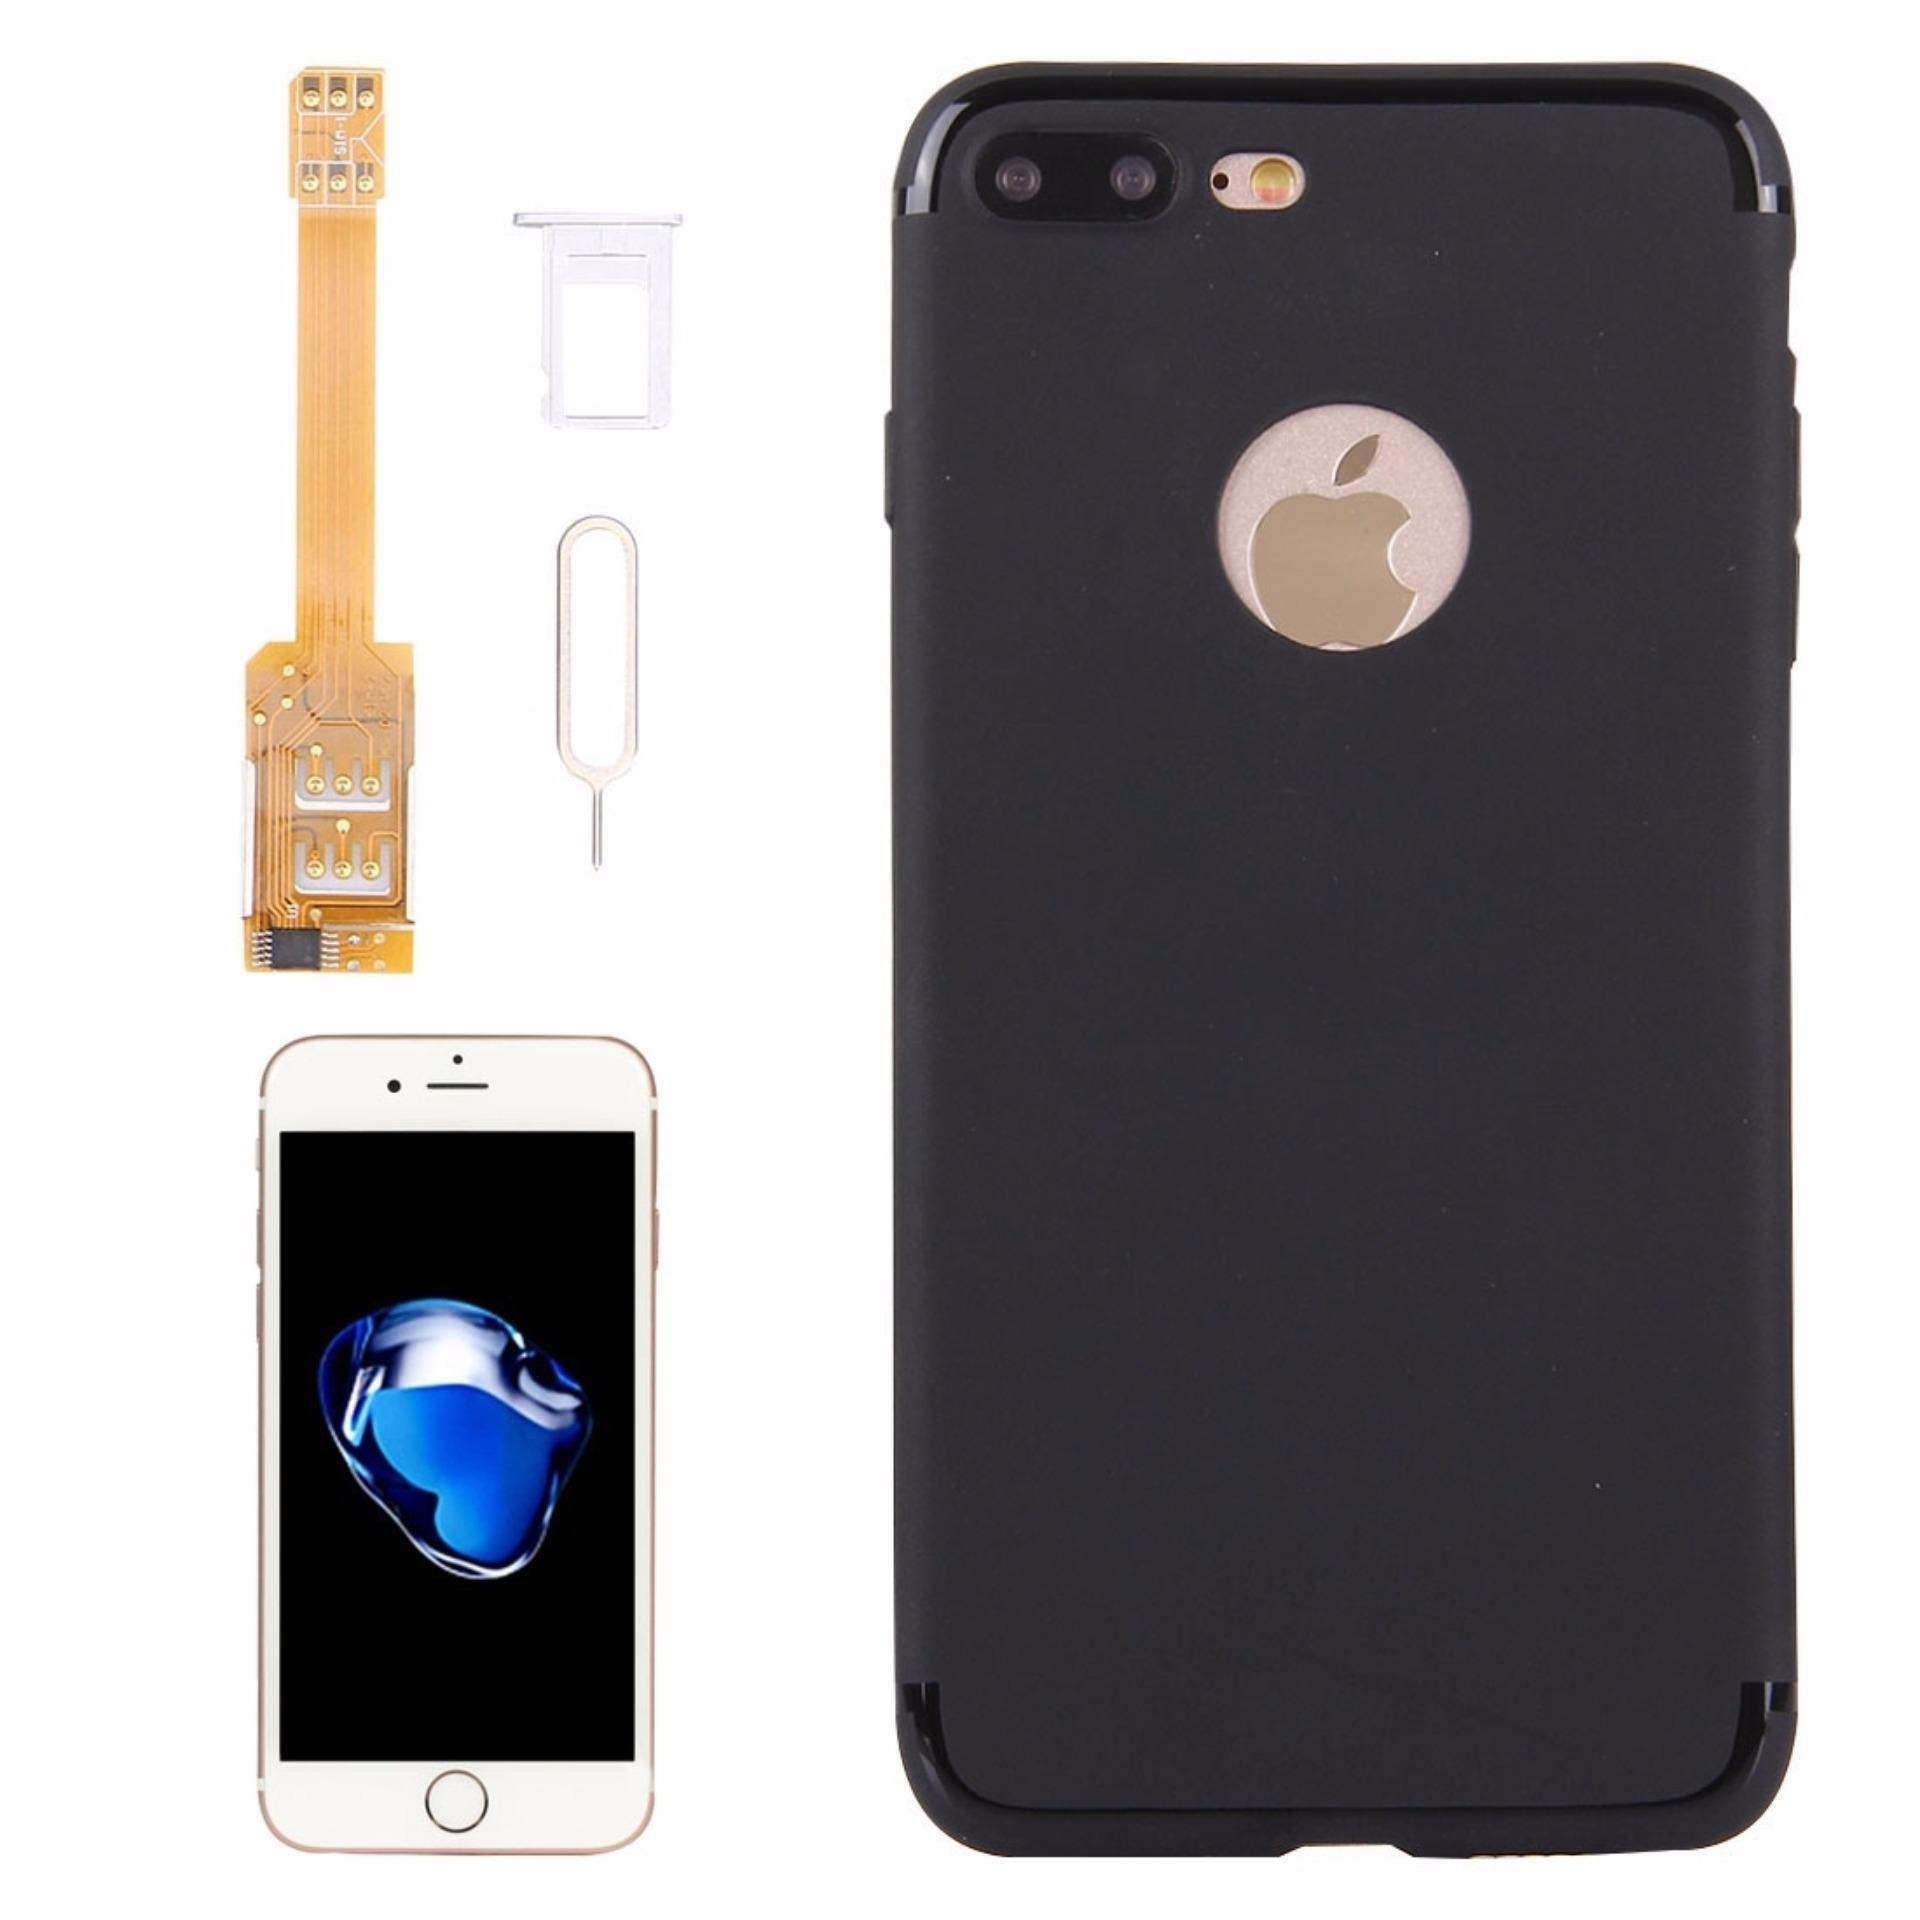 ... Kumishi For IPhone 7 Plus 2 In 1 Dual SIM Card Adapter + TPU BackCase Cover ...